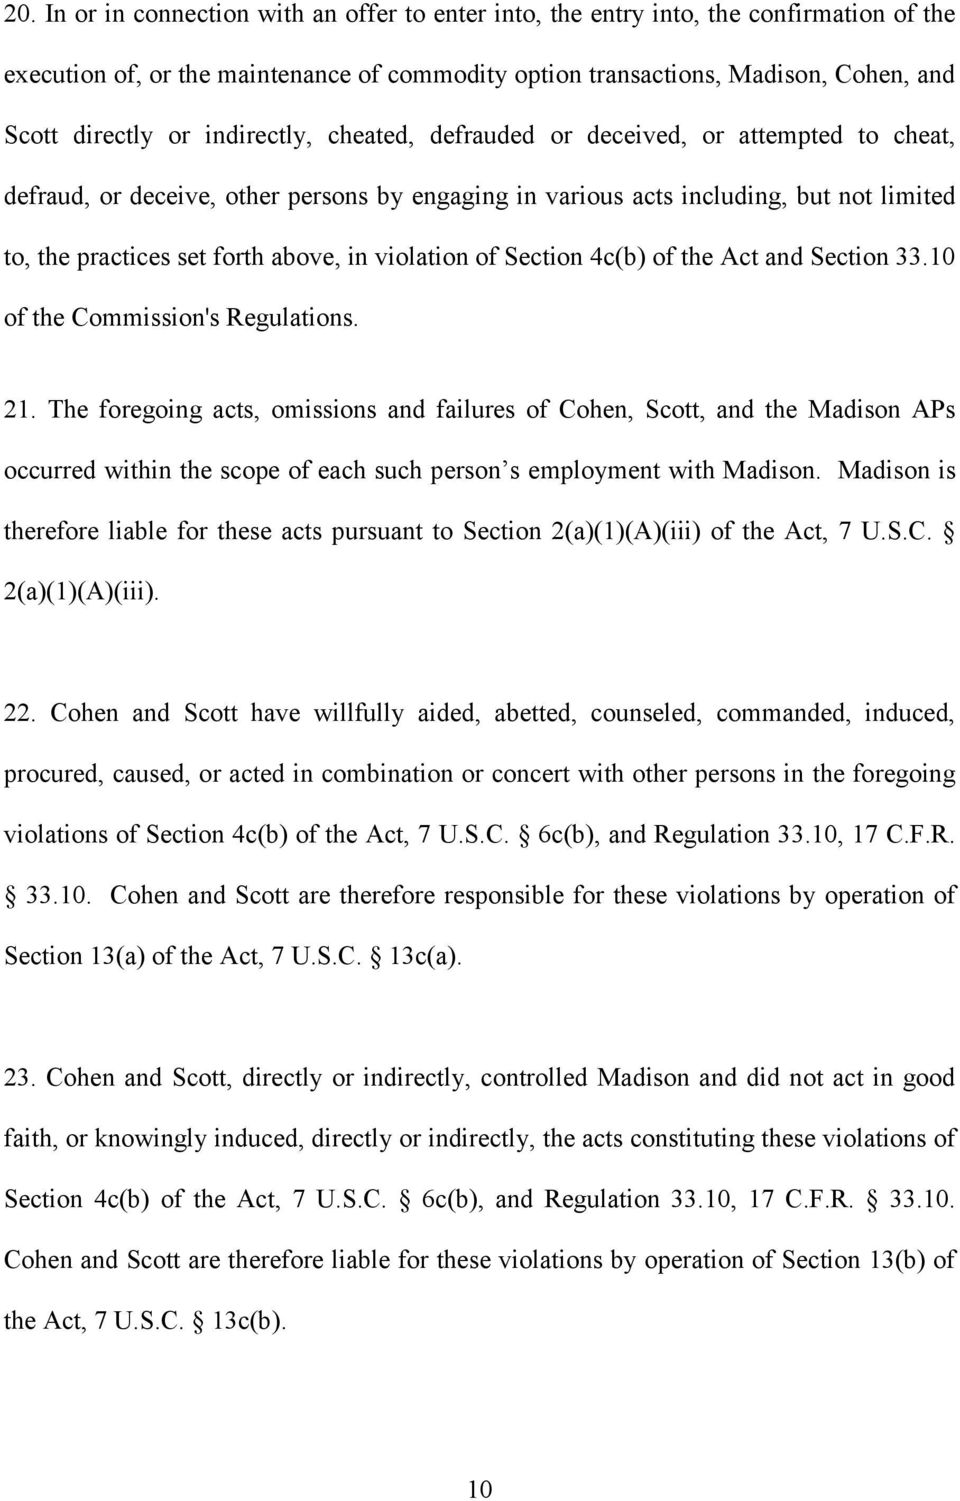 violation of Section 4c(b) of the Act and Section 33.10 of the Commission's Regulations. 21.